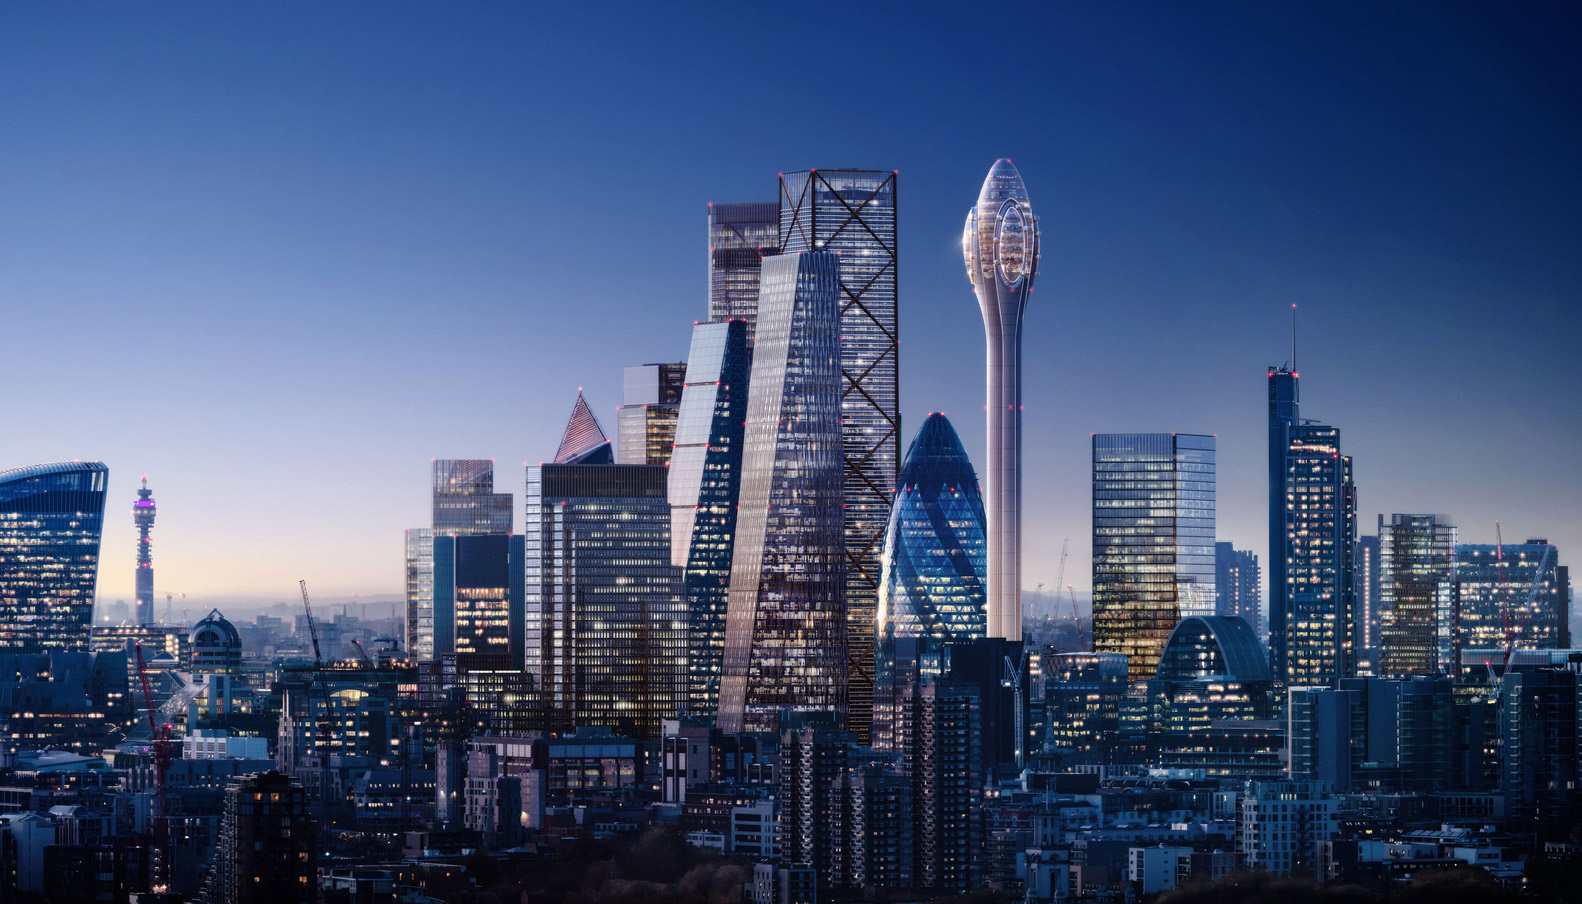 Rendering of the Tulip on London's skyline.